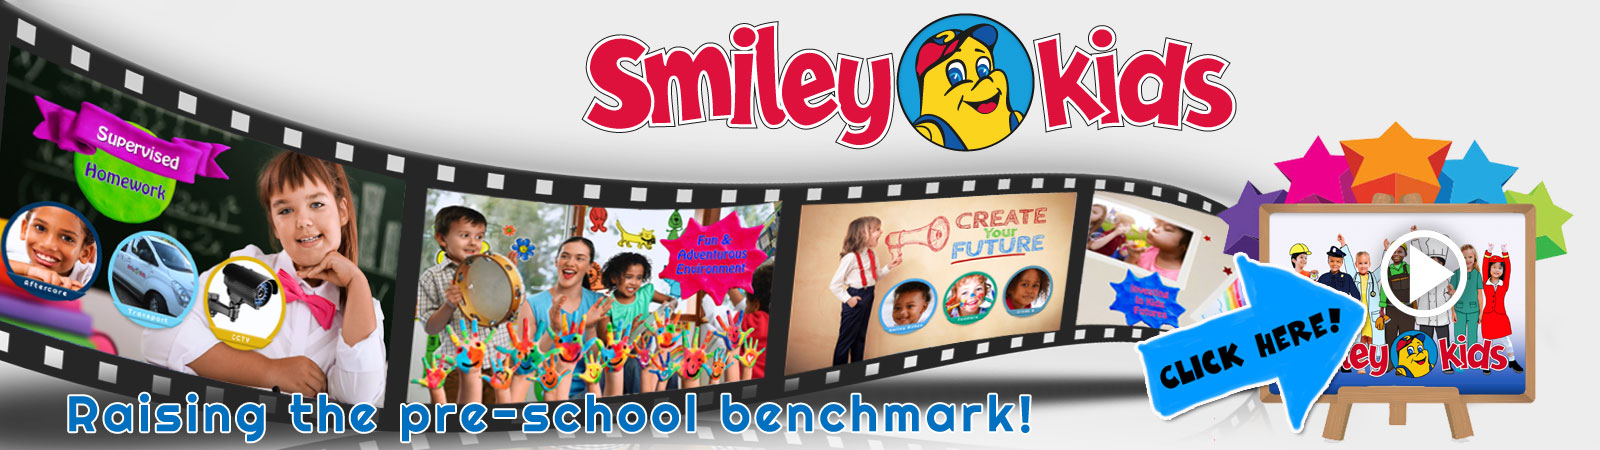 Smiley Kids Association Video